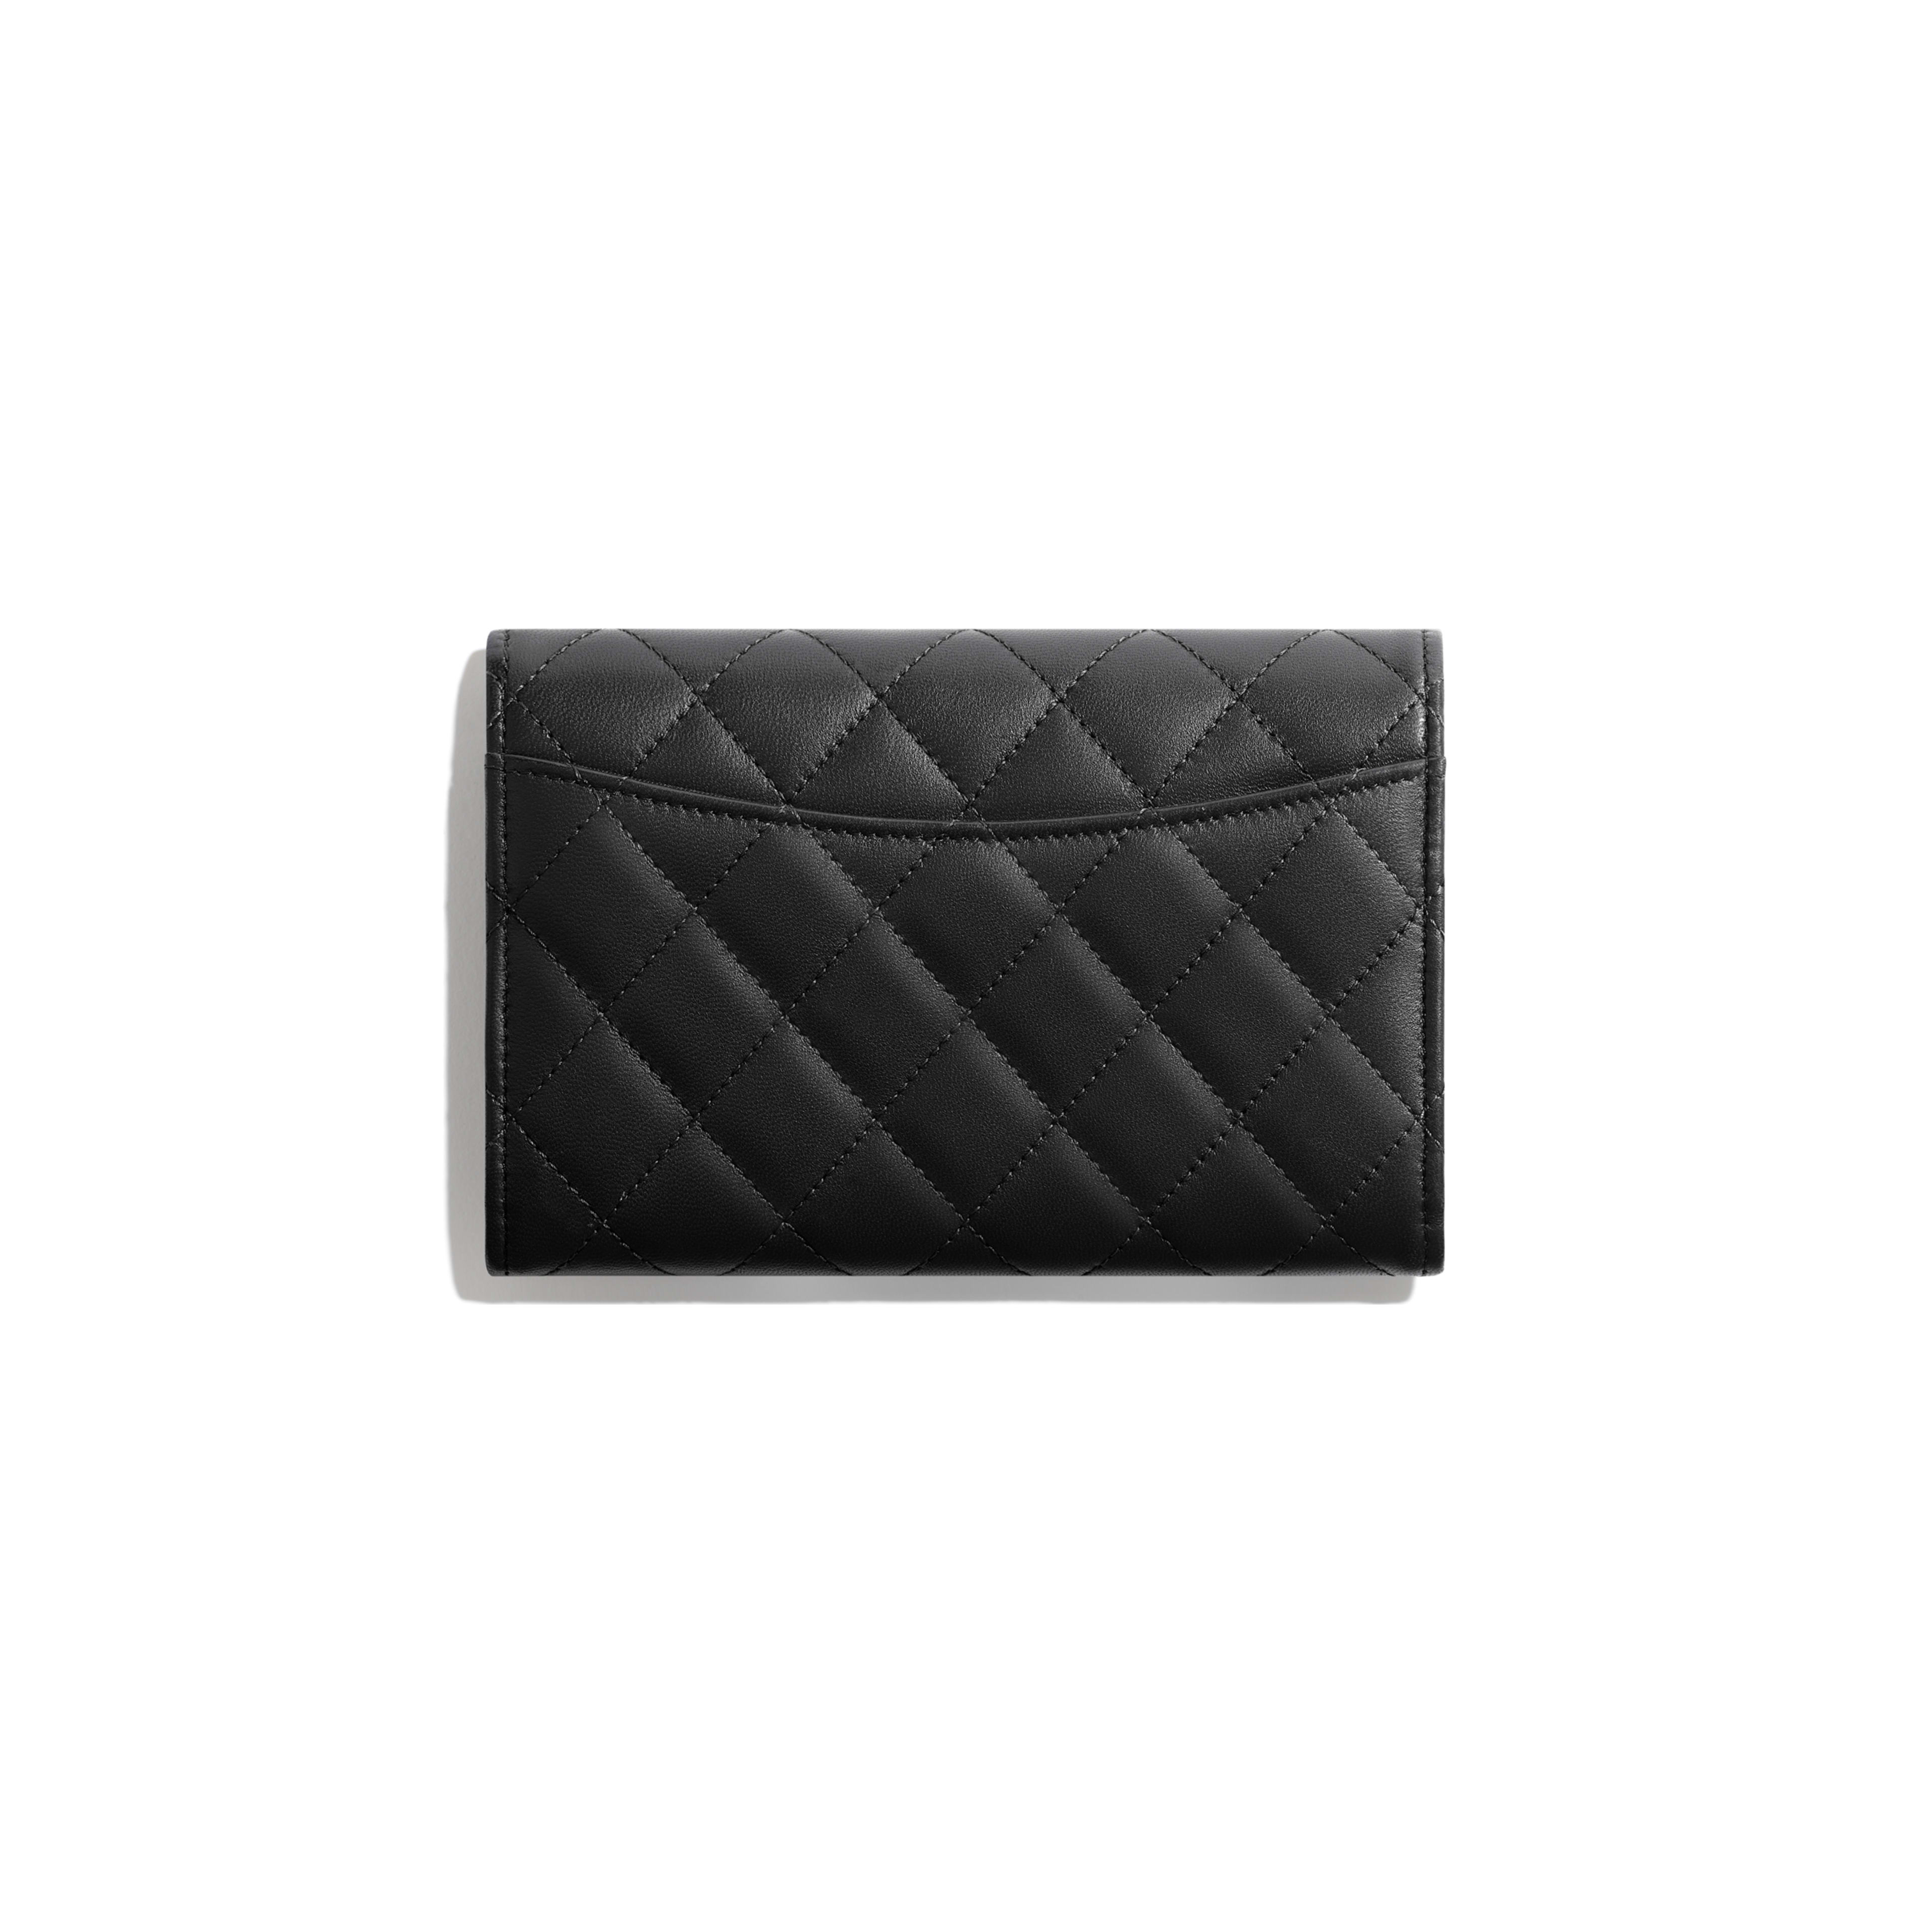 Classic Flap Wallet - Black - Lambskin - Alternative view - see full sized version